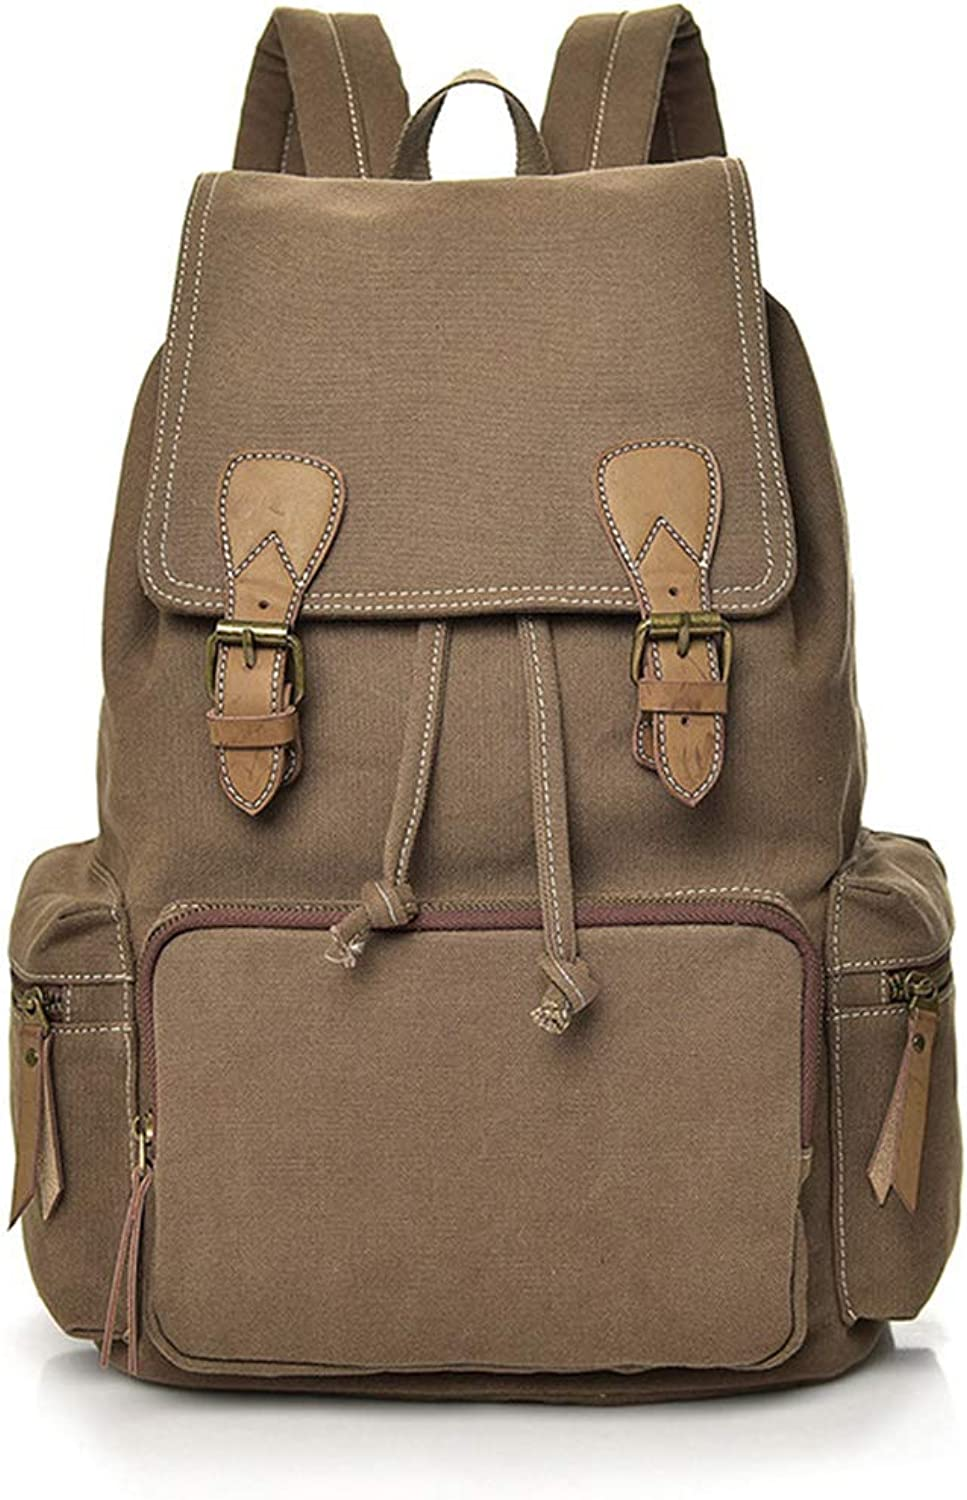 Carriemeow Backpack Backpack Leisure High School Student Bag Durable Breathable Canvas Travel Bag Computer Bag Men Backpack (color   Coffee color)